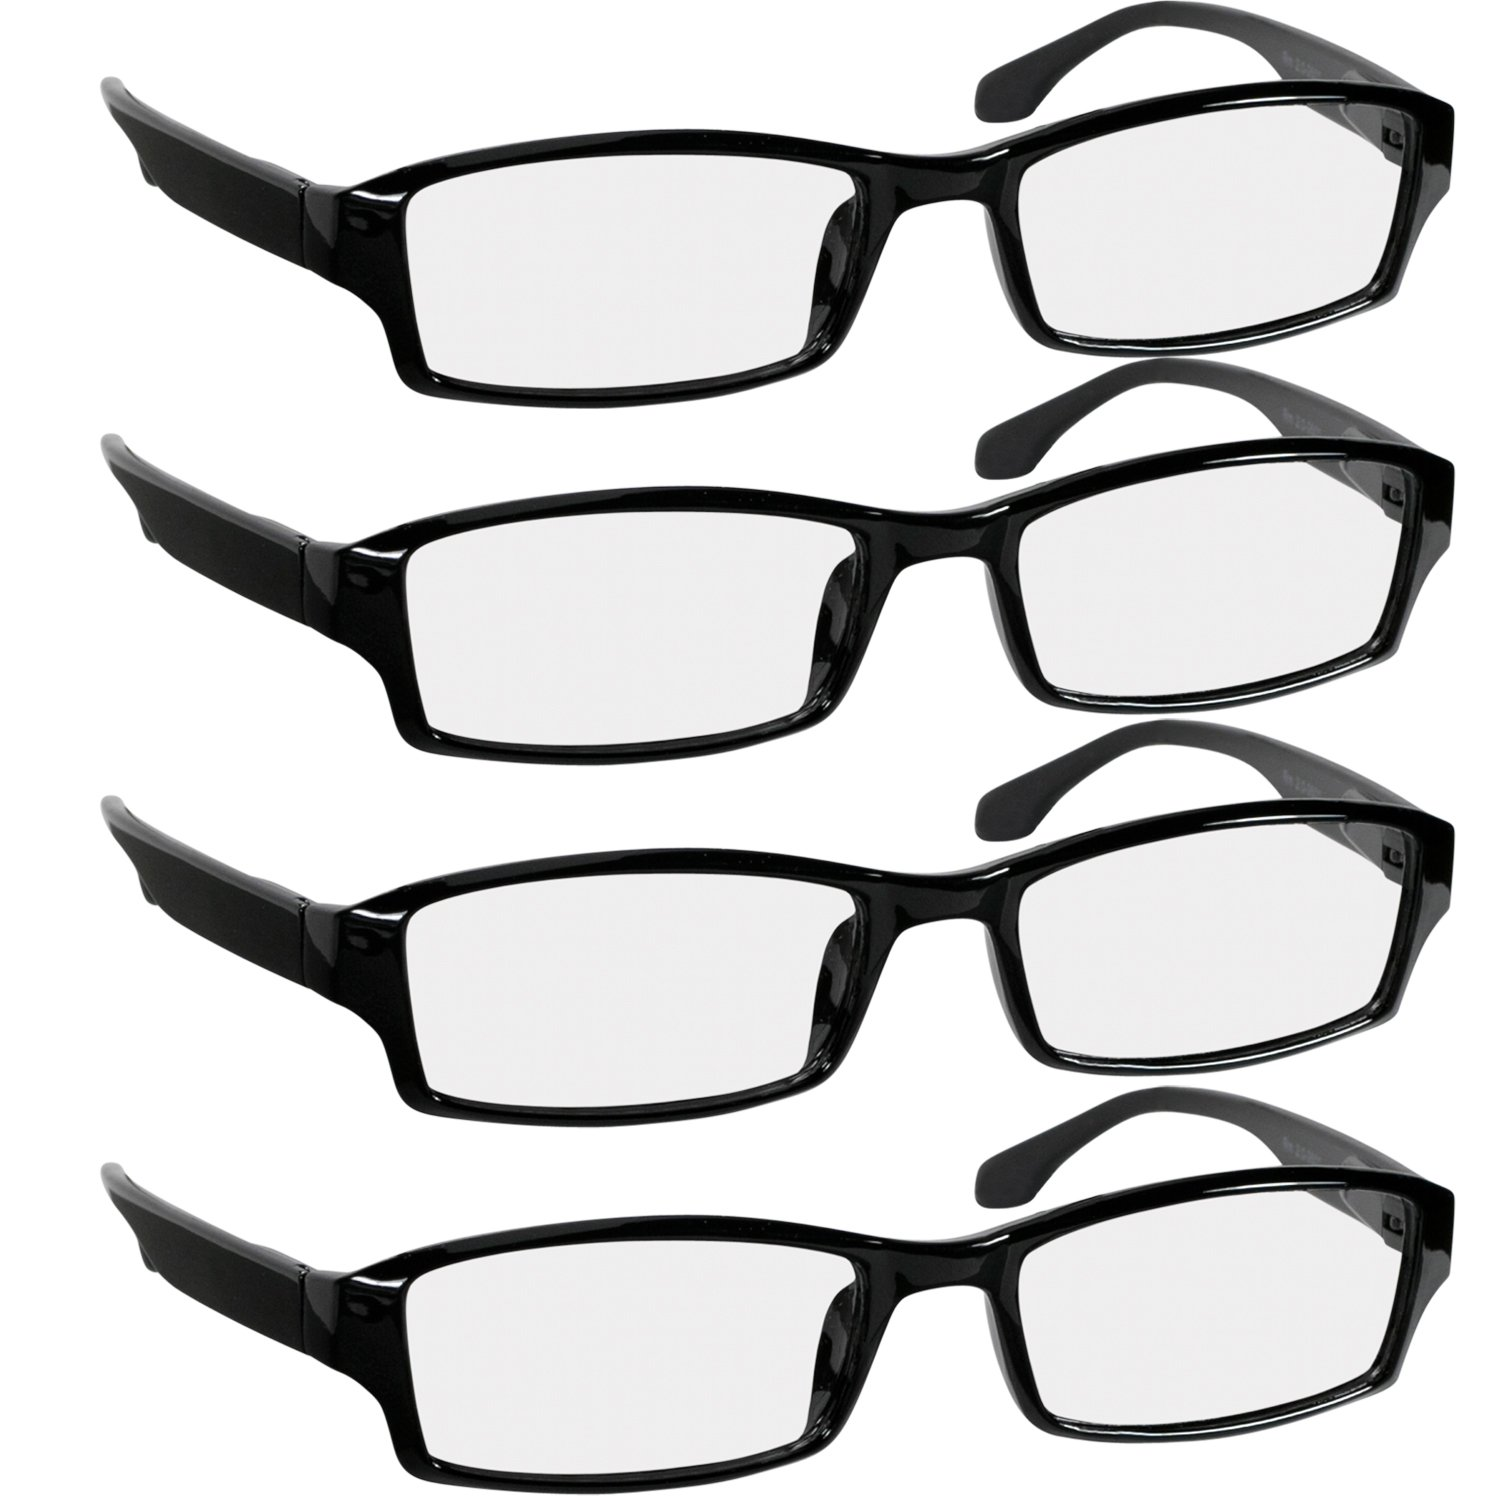 Reading Glasees 2.0 | 4 Pack Black | Readers for Men & Women Spring Arms & Dura-Tight Screws | Always Have a Stylish Look and Crystal Clear Vision When You Need It by TruVision Readers